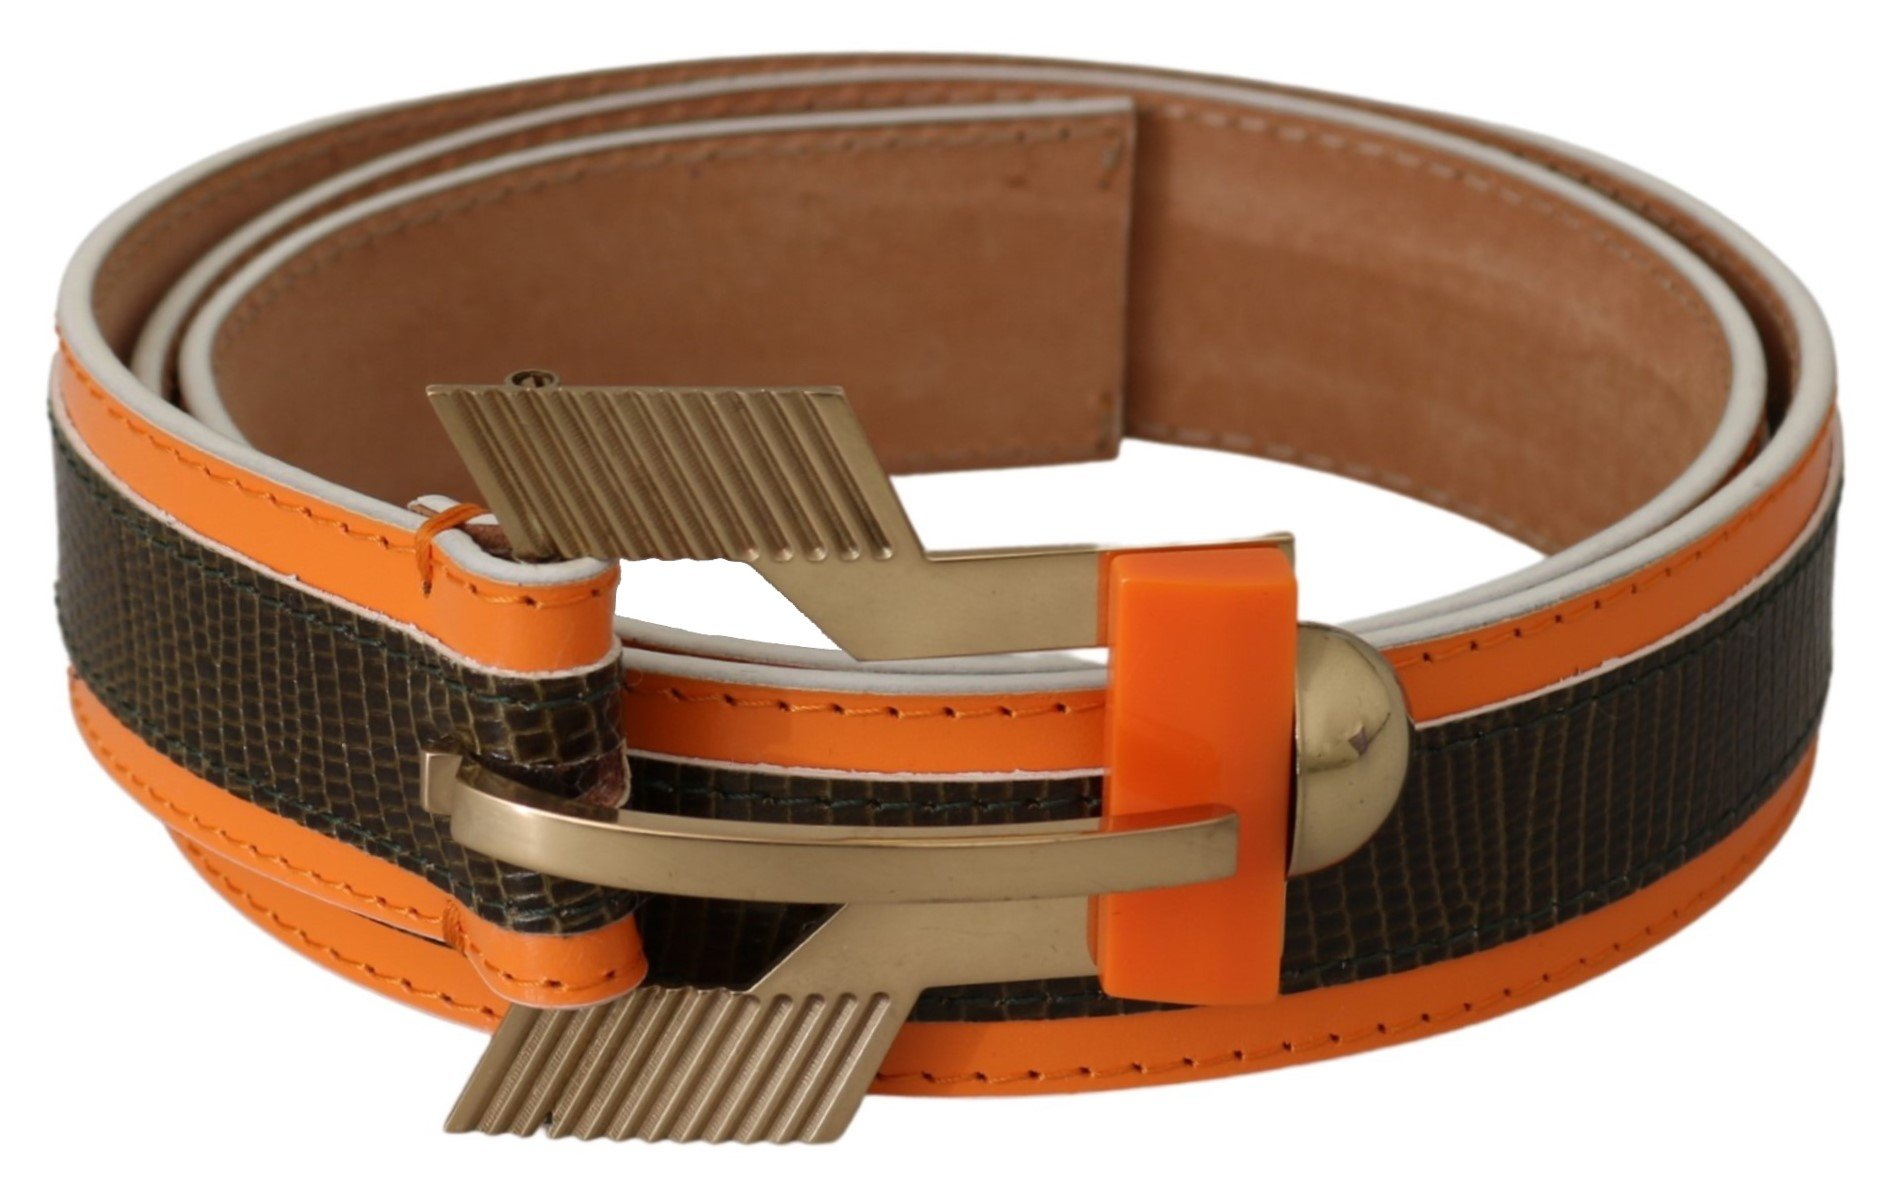 CO TE Women's Leather Buckle Animal Pattern Belt Brown BEL60665 - 90 cm / 36 Inches